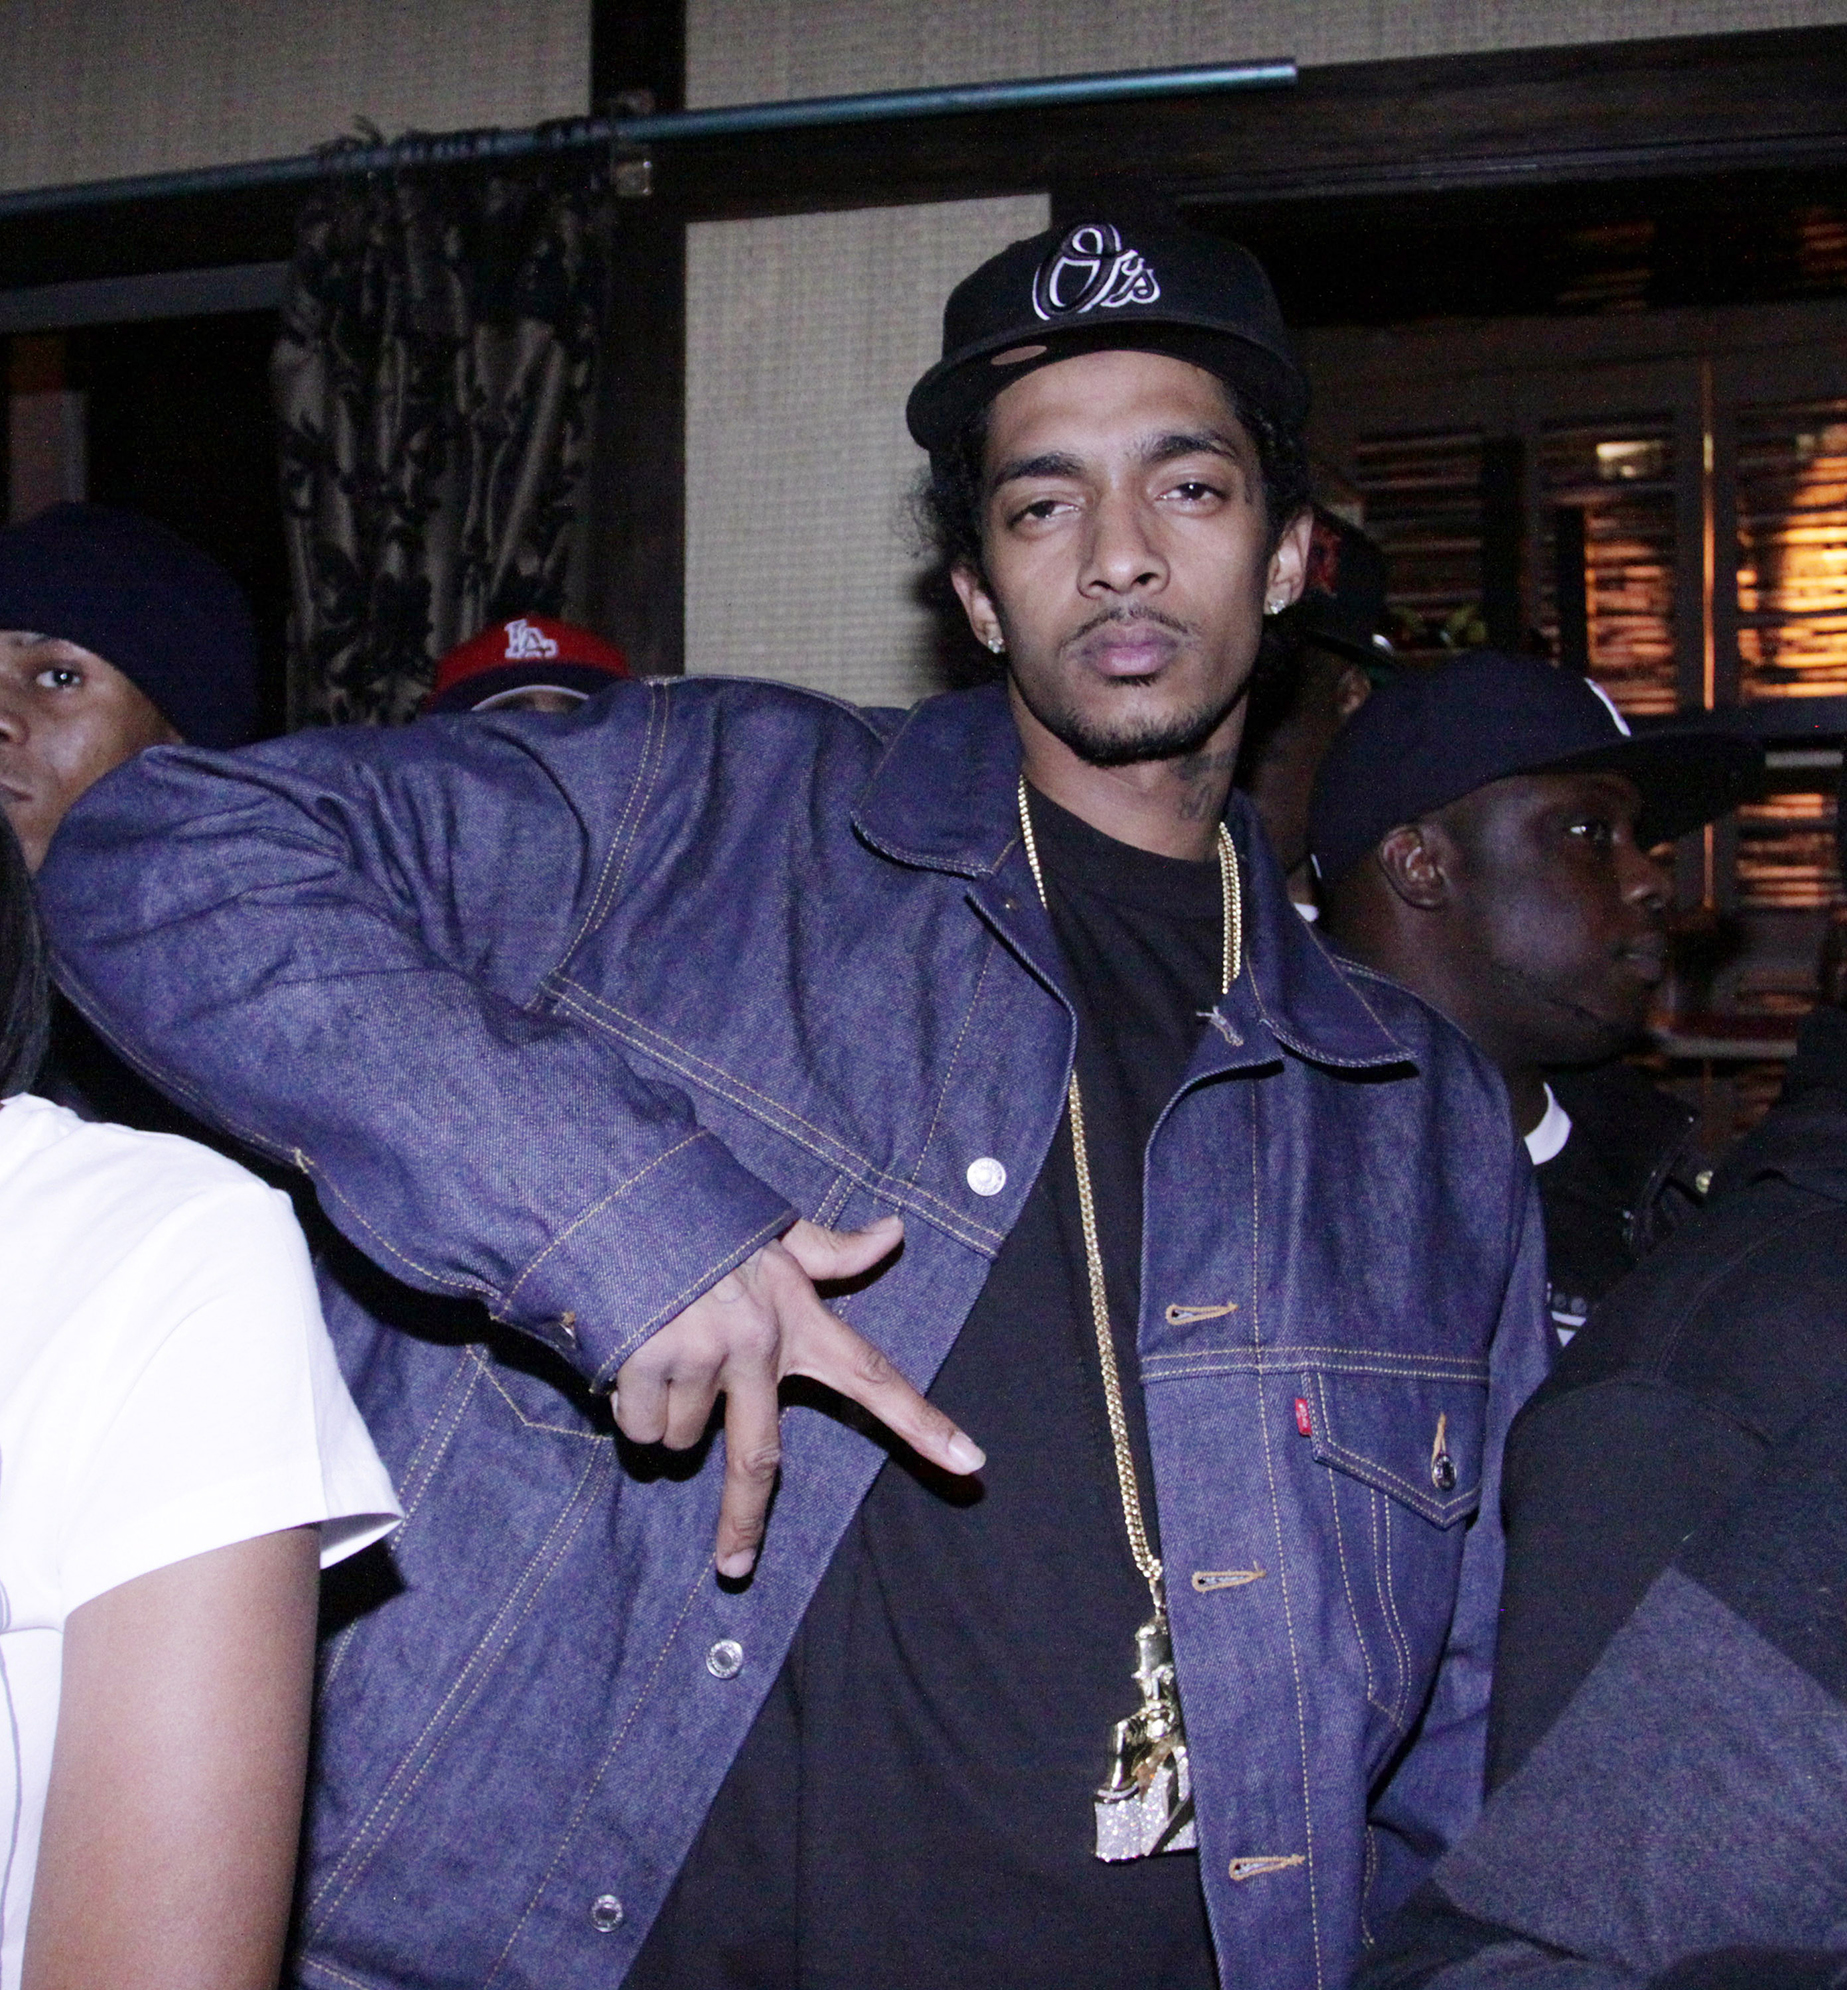 NEW YORK - MARCH 30:  Recording artist Nipsey Hussle attends S.O.B.'s on March 30, 2010 in New York City.  (Photo by Johnny Nunez/WireImage) *** Local Caption *** Nipsey Hussle